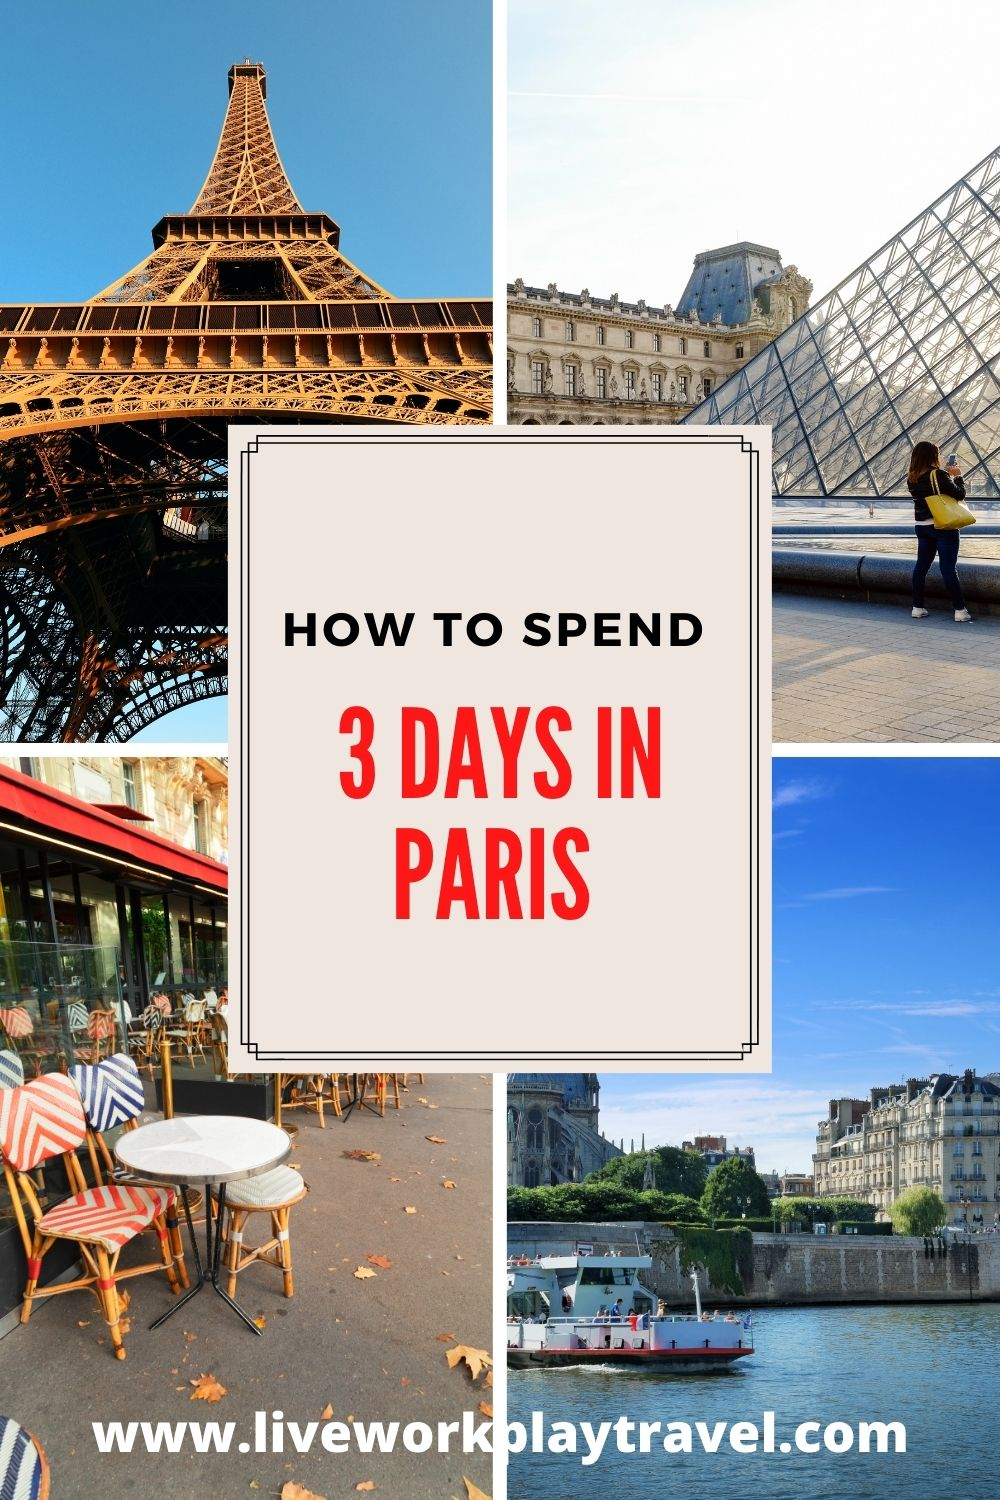 See Paris In 3 Days. See The Eiffel Tower, Isle de la Cite, The Louvre And Sit In A Cafe.